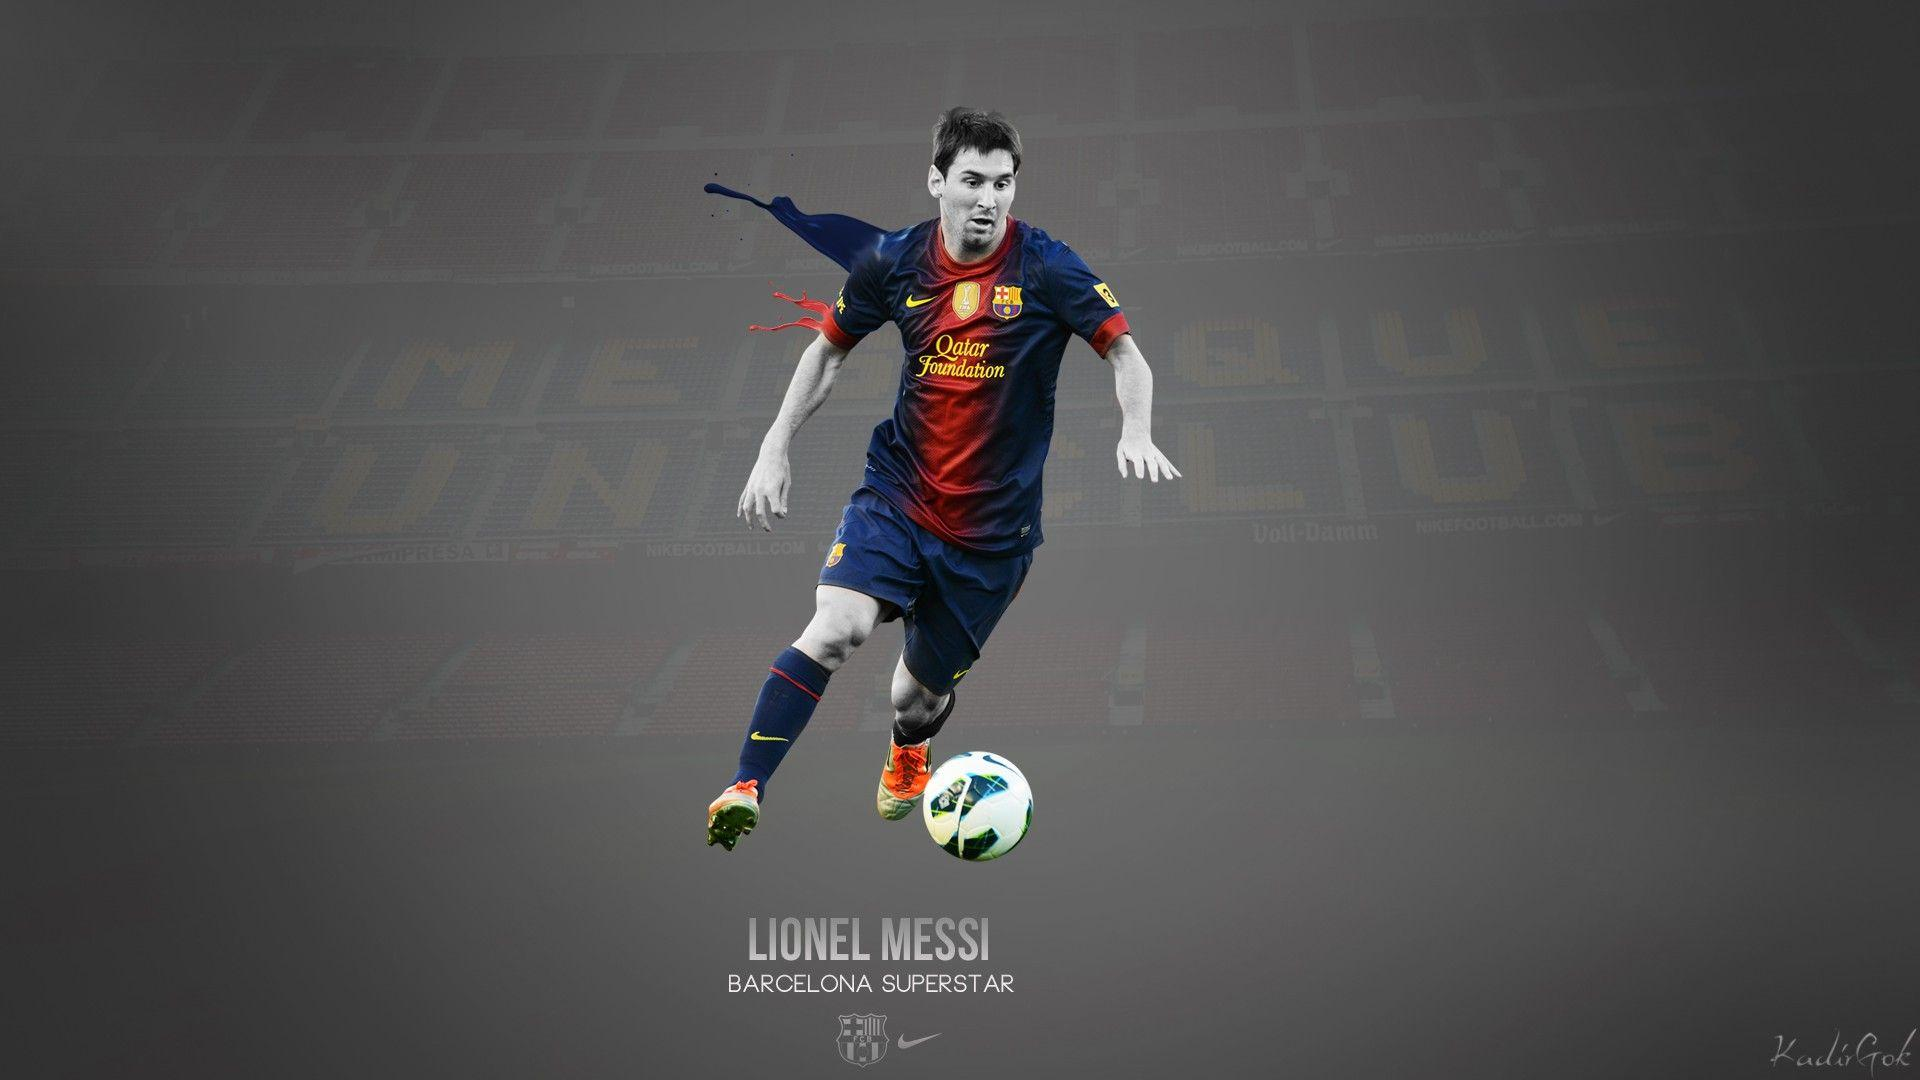 Lionel Messi Wallpapers HD 1920x1080